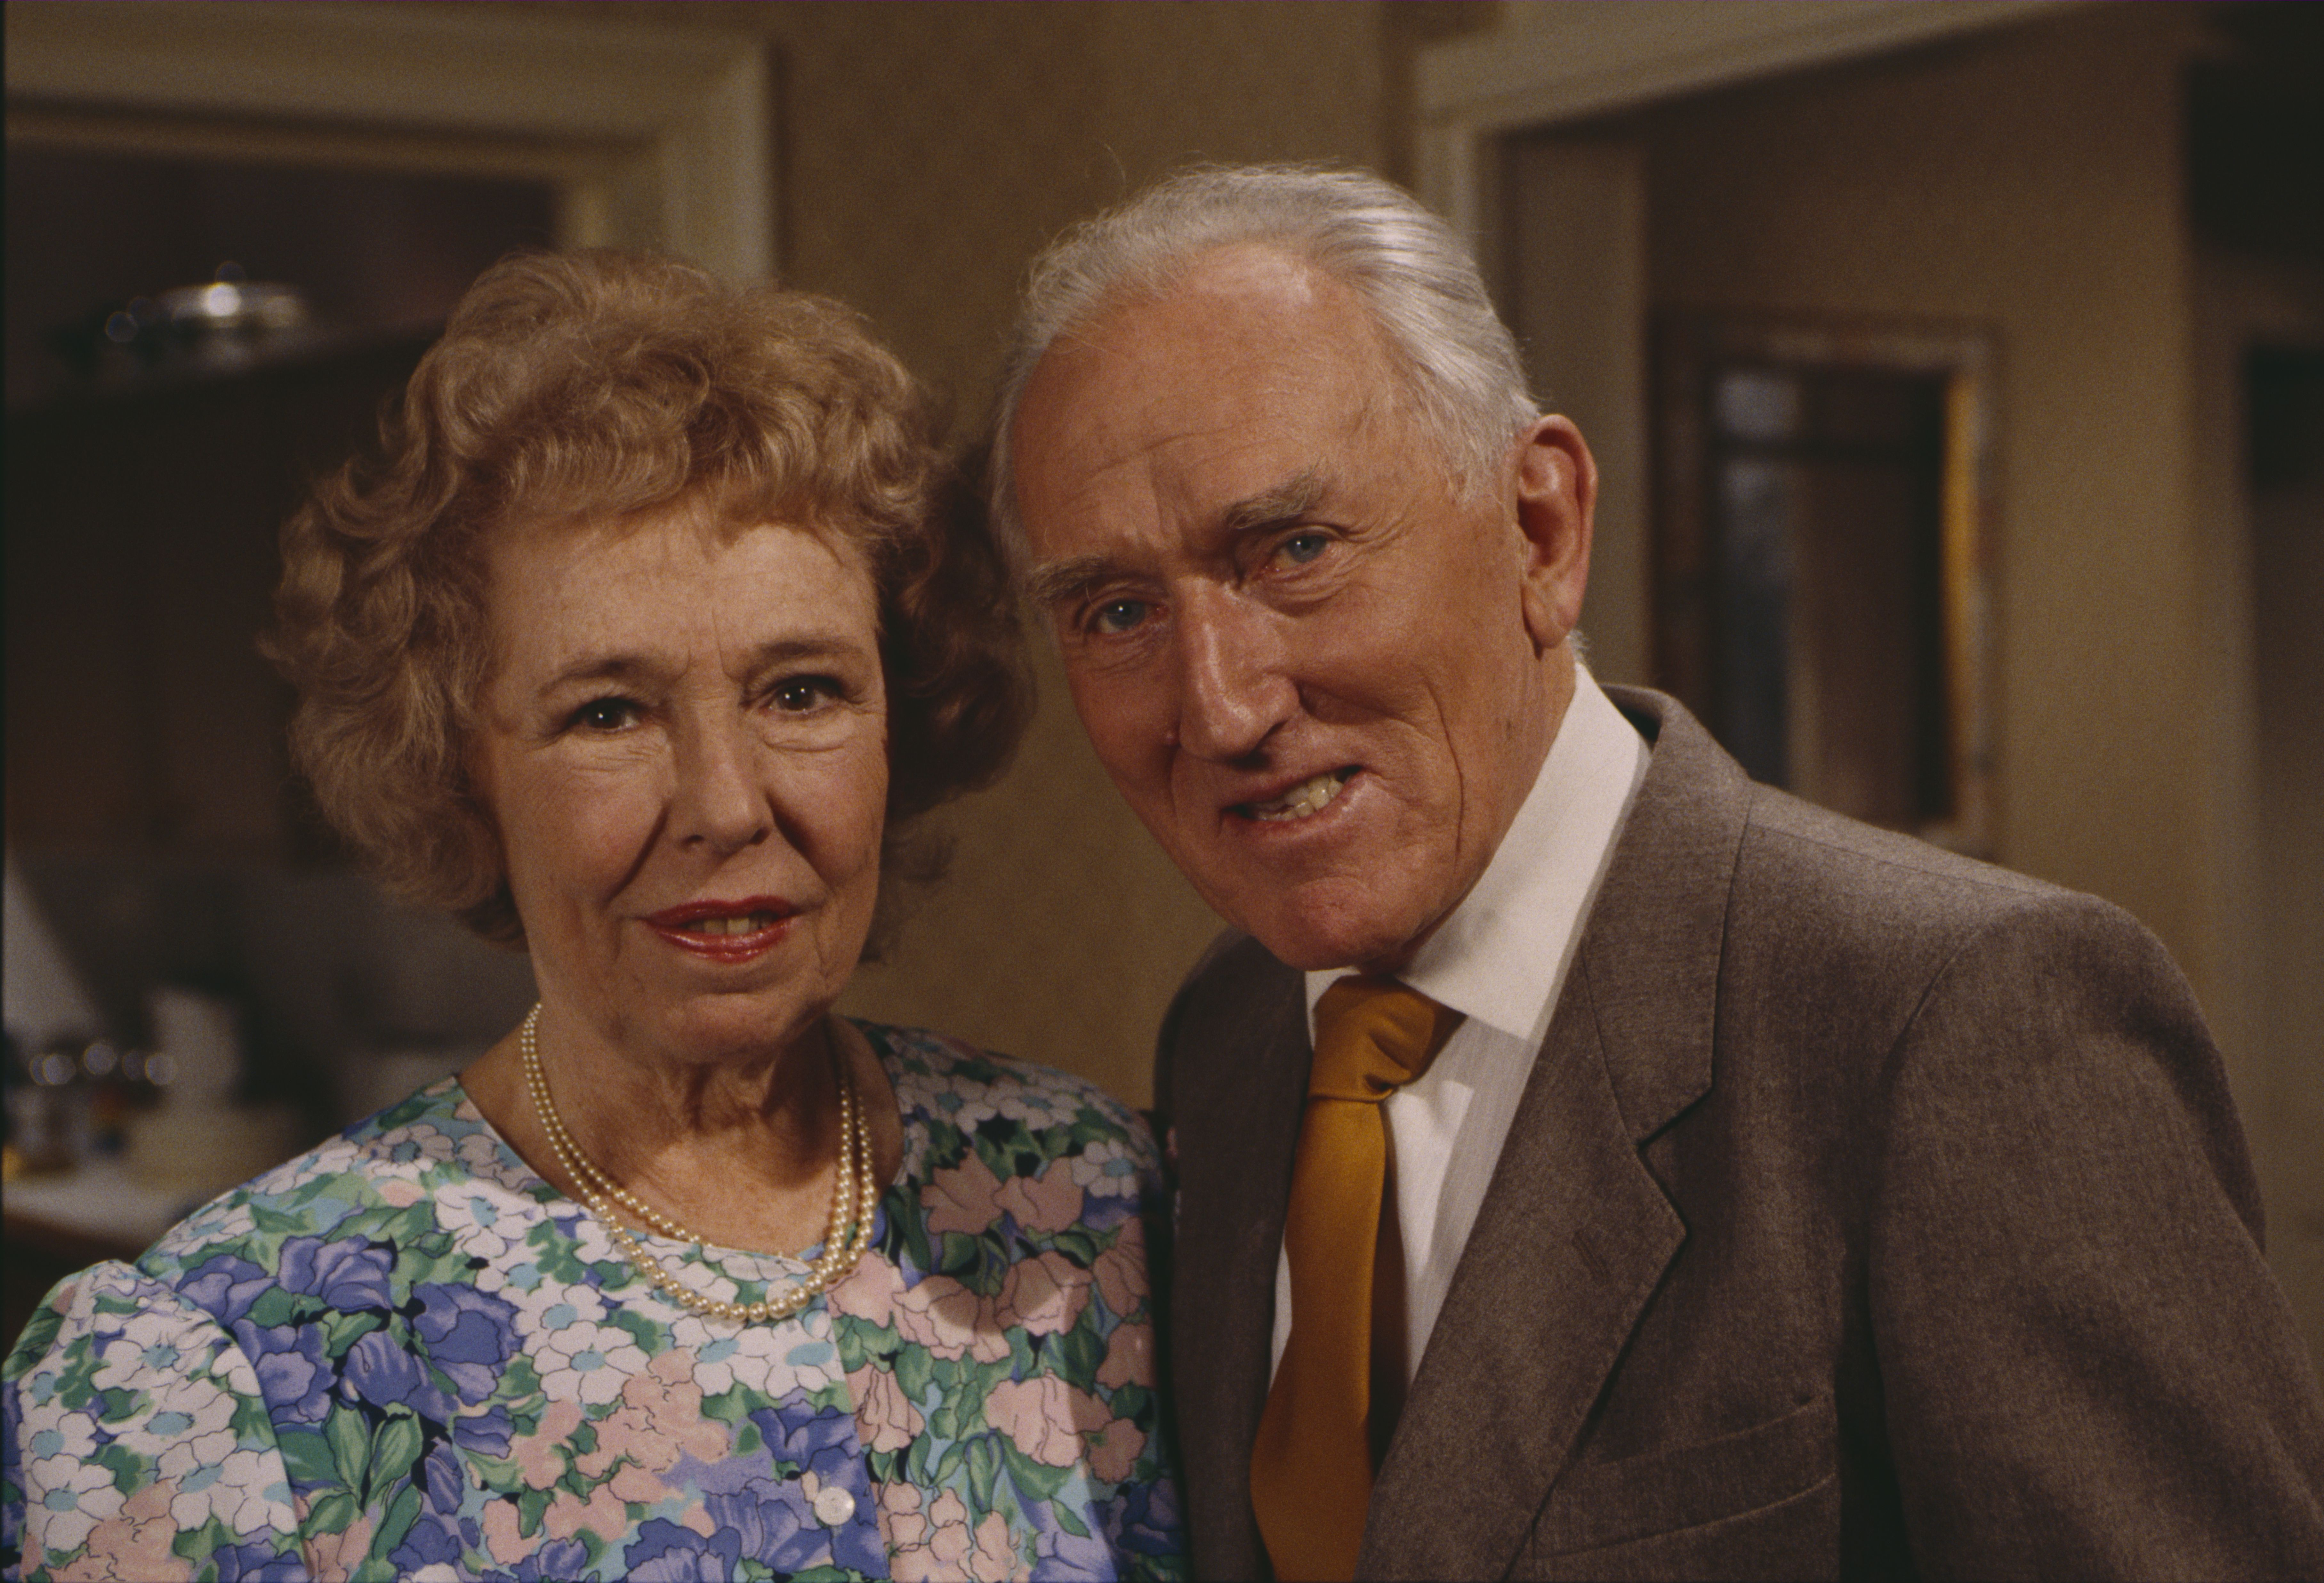 Editorial use only Mandatory Credit: Photo by ITV/Shutterstock (8105620j) Sheila Mercier (as Annie Sugden) and Bernard Archard (as Leonard Kempinski) (Ep 1766 - 20th May 1993) 'Emmerdale' TV Series - 20 May 1993 Emmerdale Farm is a long-running British soap opera set in Emmerdale, a fictional village in the Yorkshire Dales. Created by Kevin Laffan, it first broadcast on 16 October 1972 and produced by ITV Yorkshire.